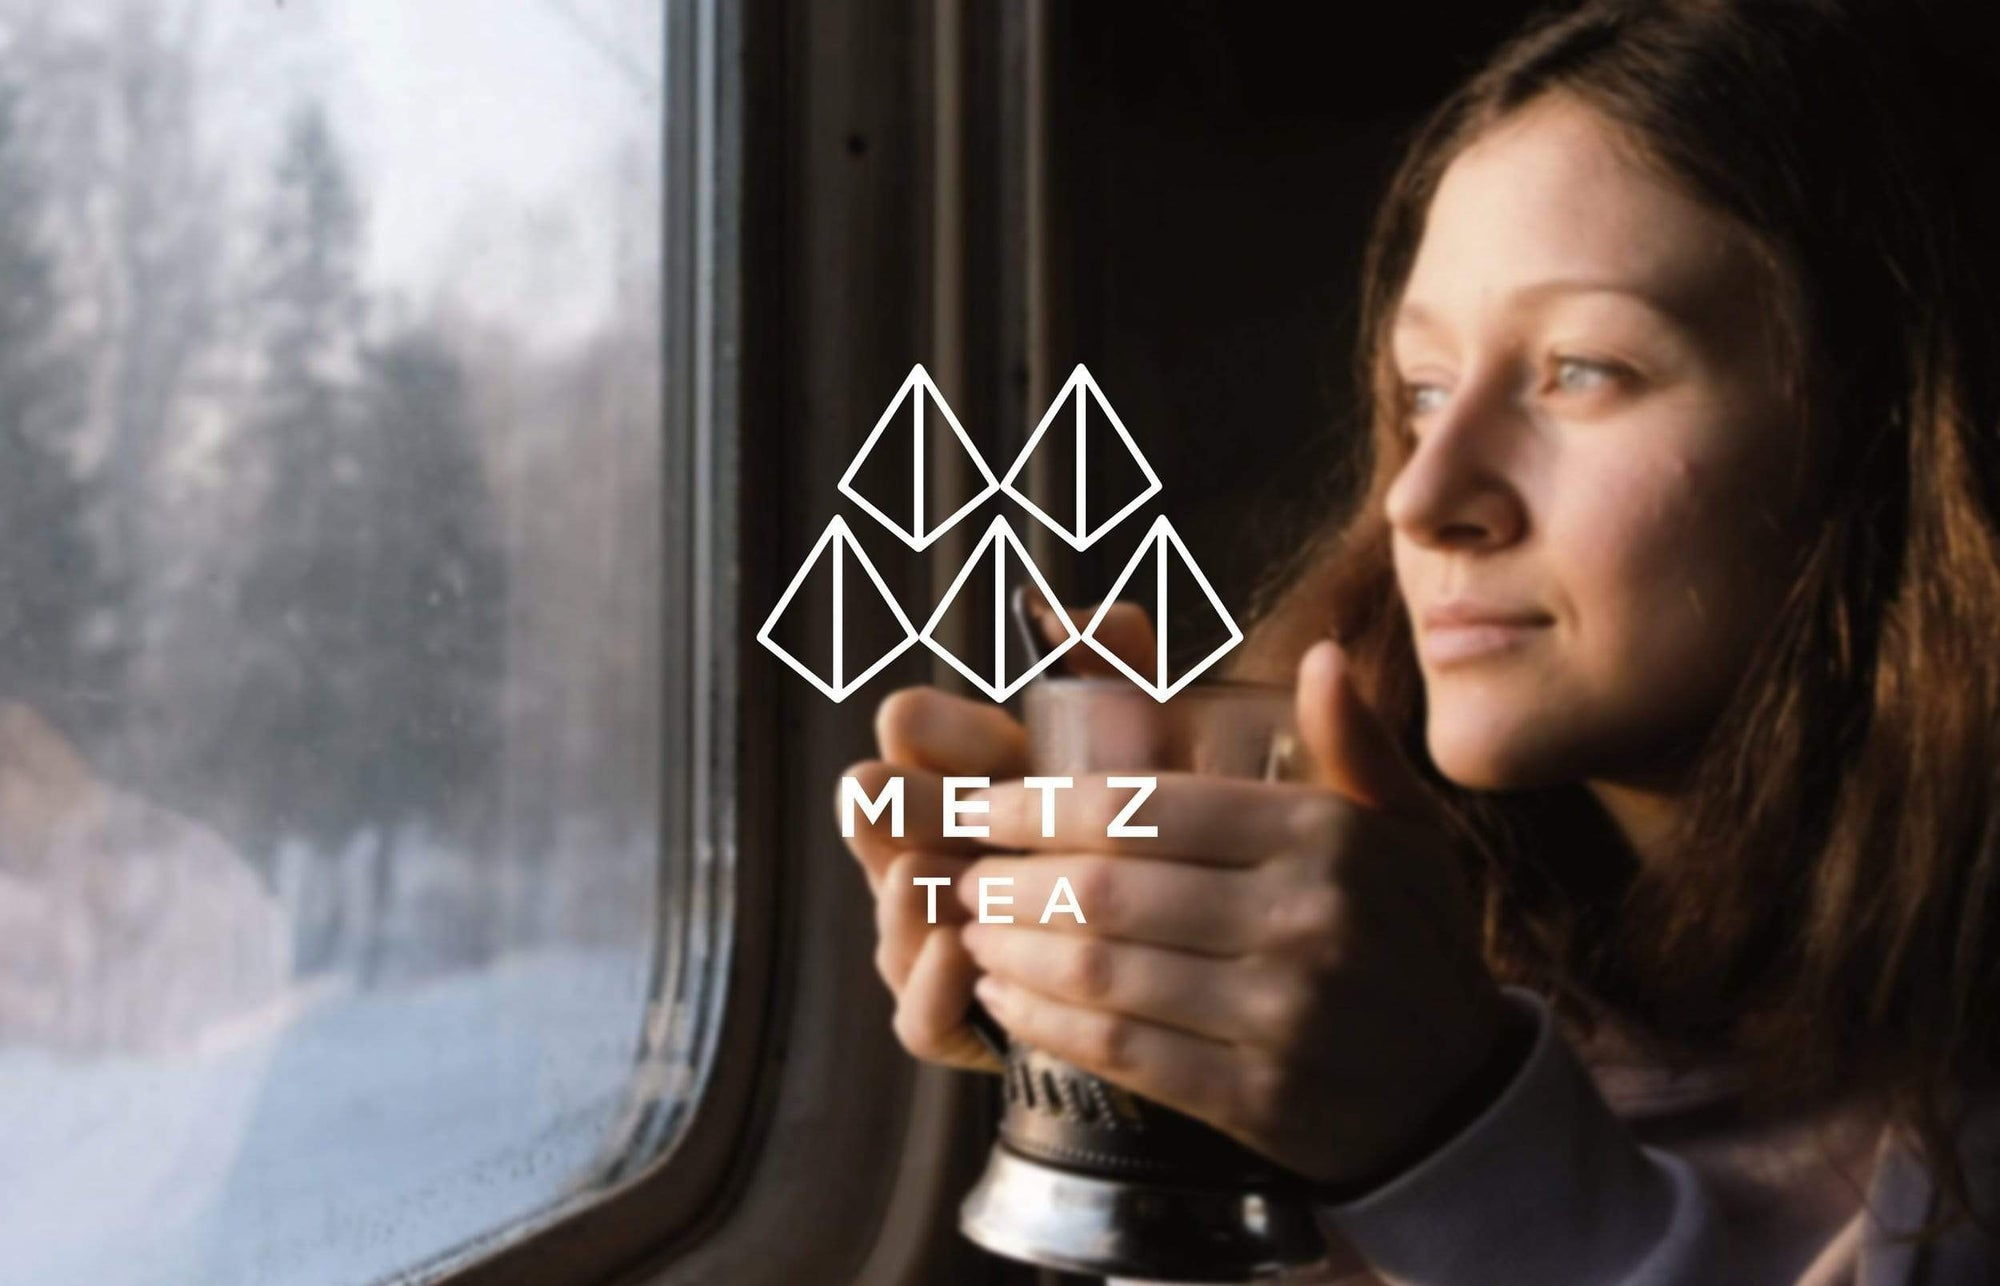 METZ Luxury Tea